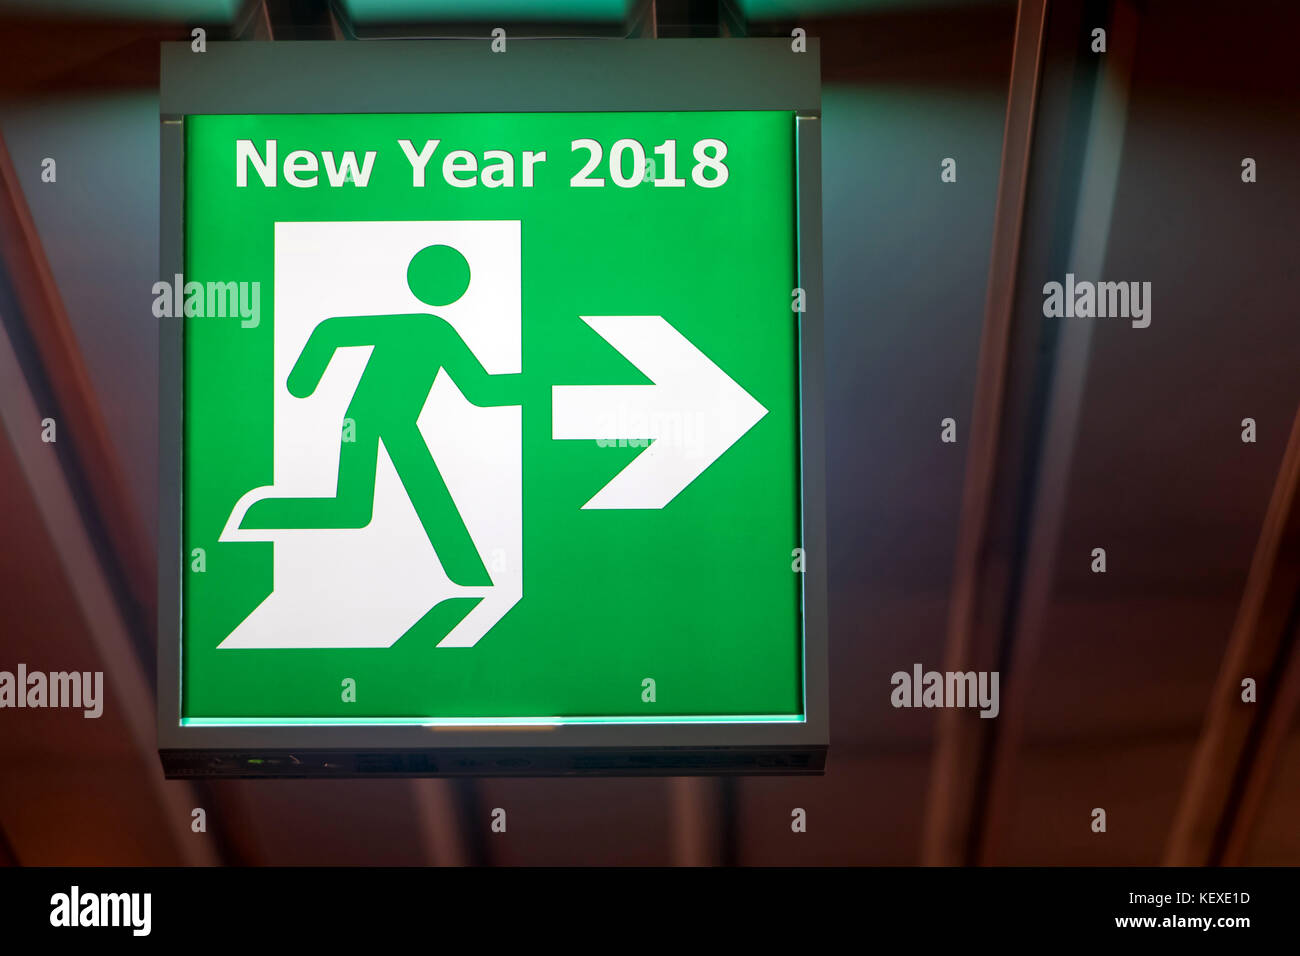 The emergency exit sign shows the direction of escape for happy new the emergency exit sign shows the direction of escape for happy new year the board pointing way to new year 2018 buycottarizona Images